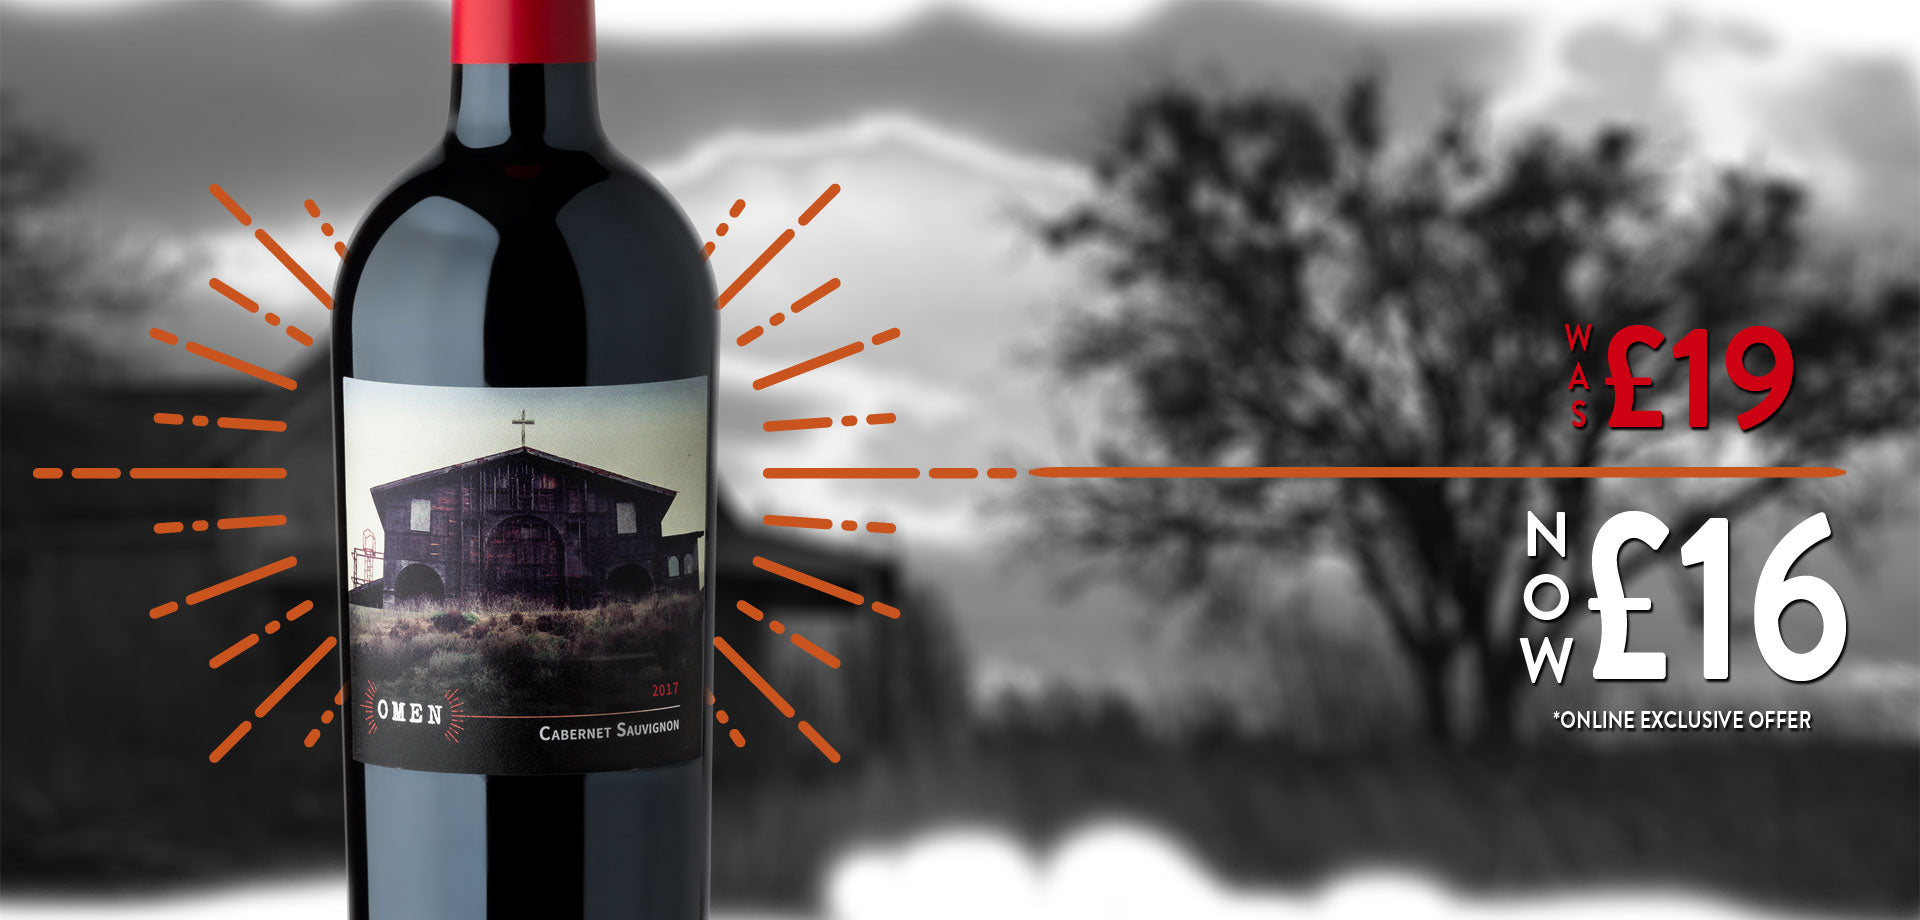 Omen Cabernet Sauvignon Online Exclusive Offer